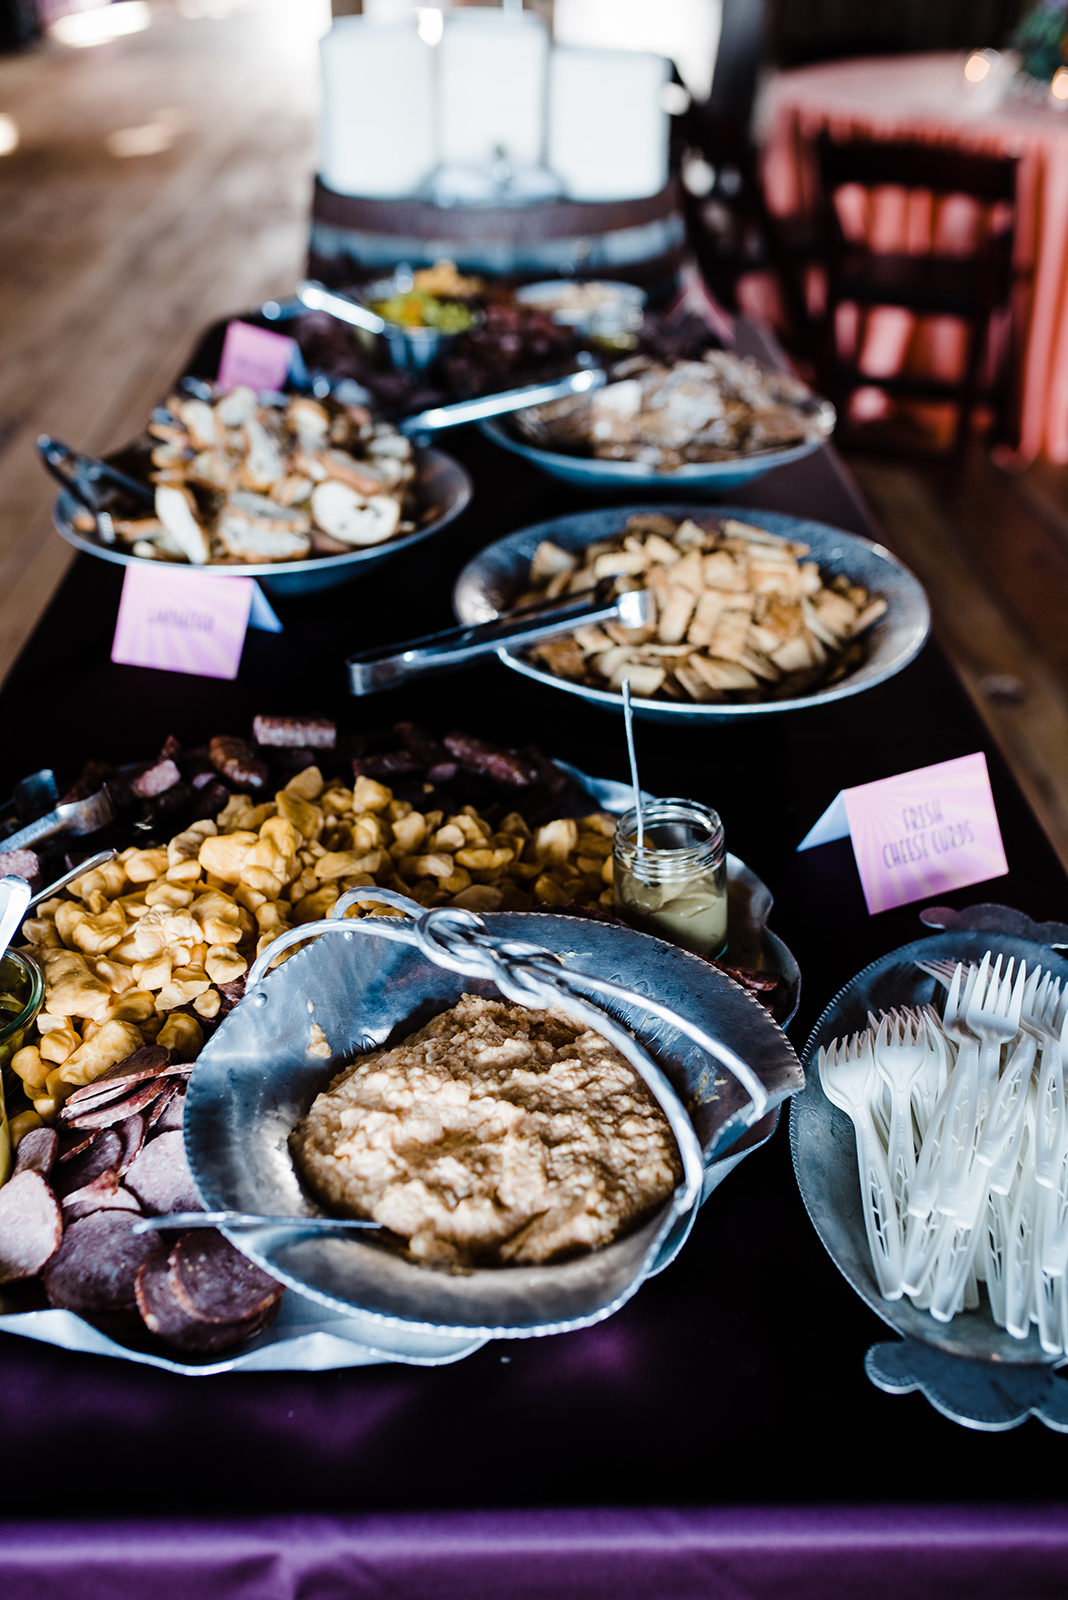 catering food spread table